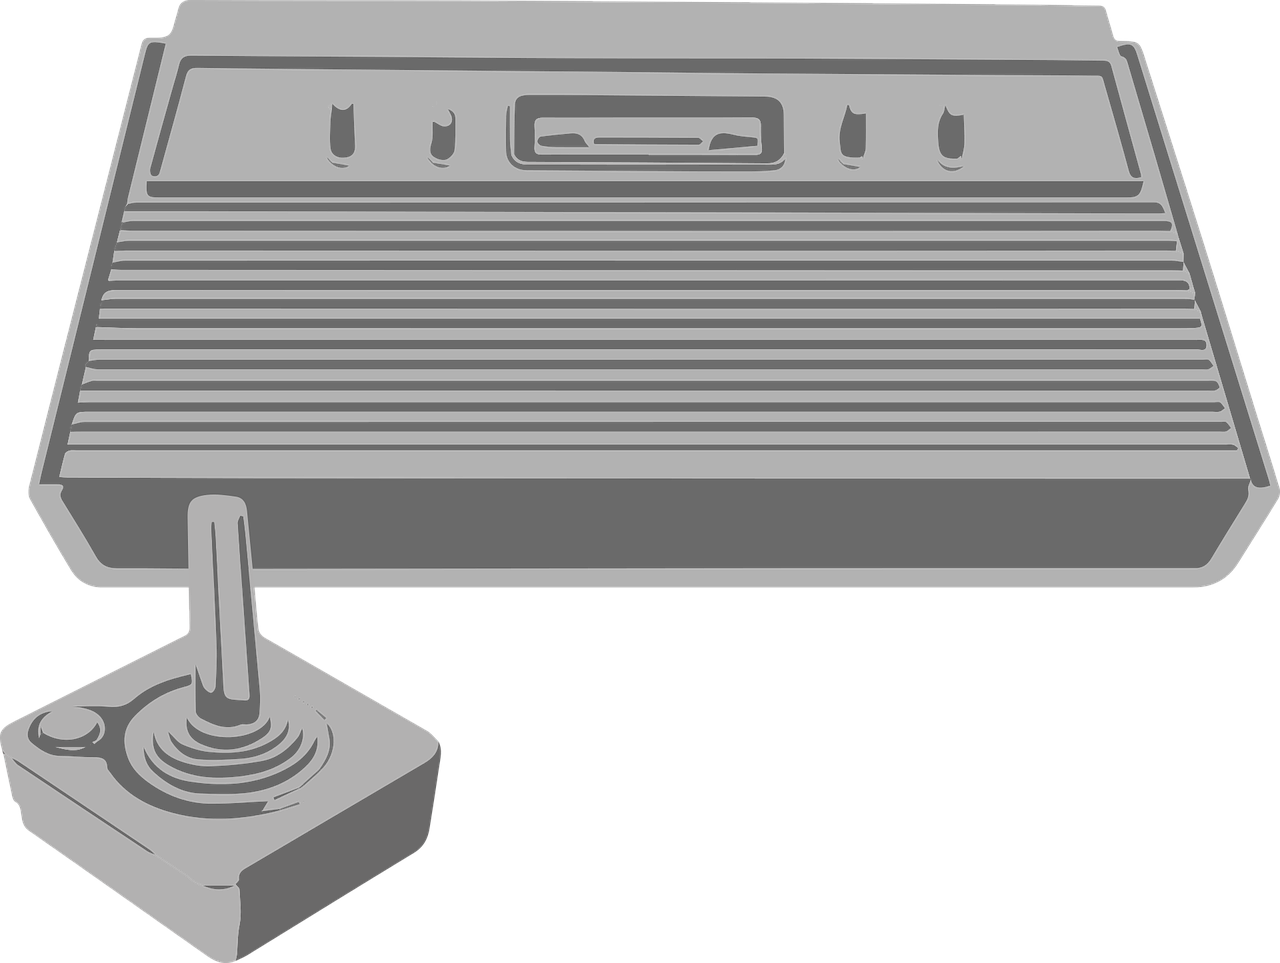 atari 2600 console - free vector graphic on pixabay  pixabay